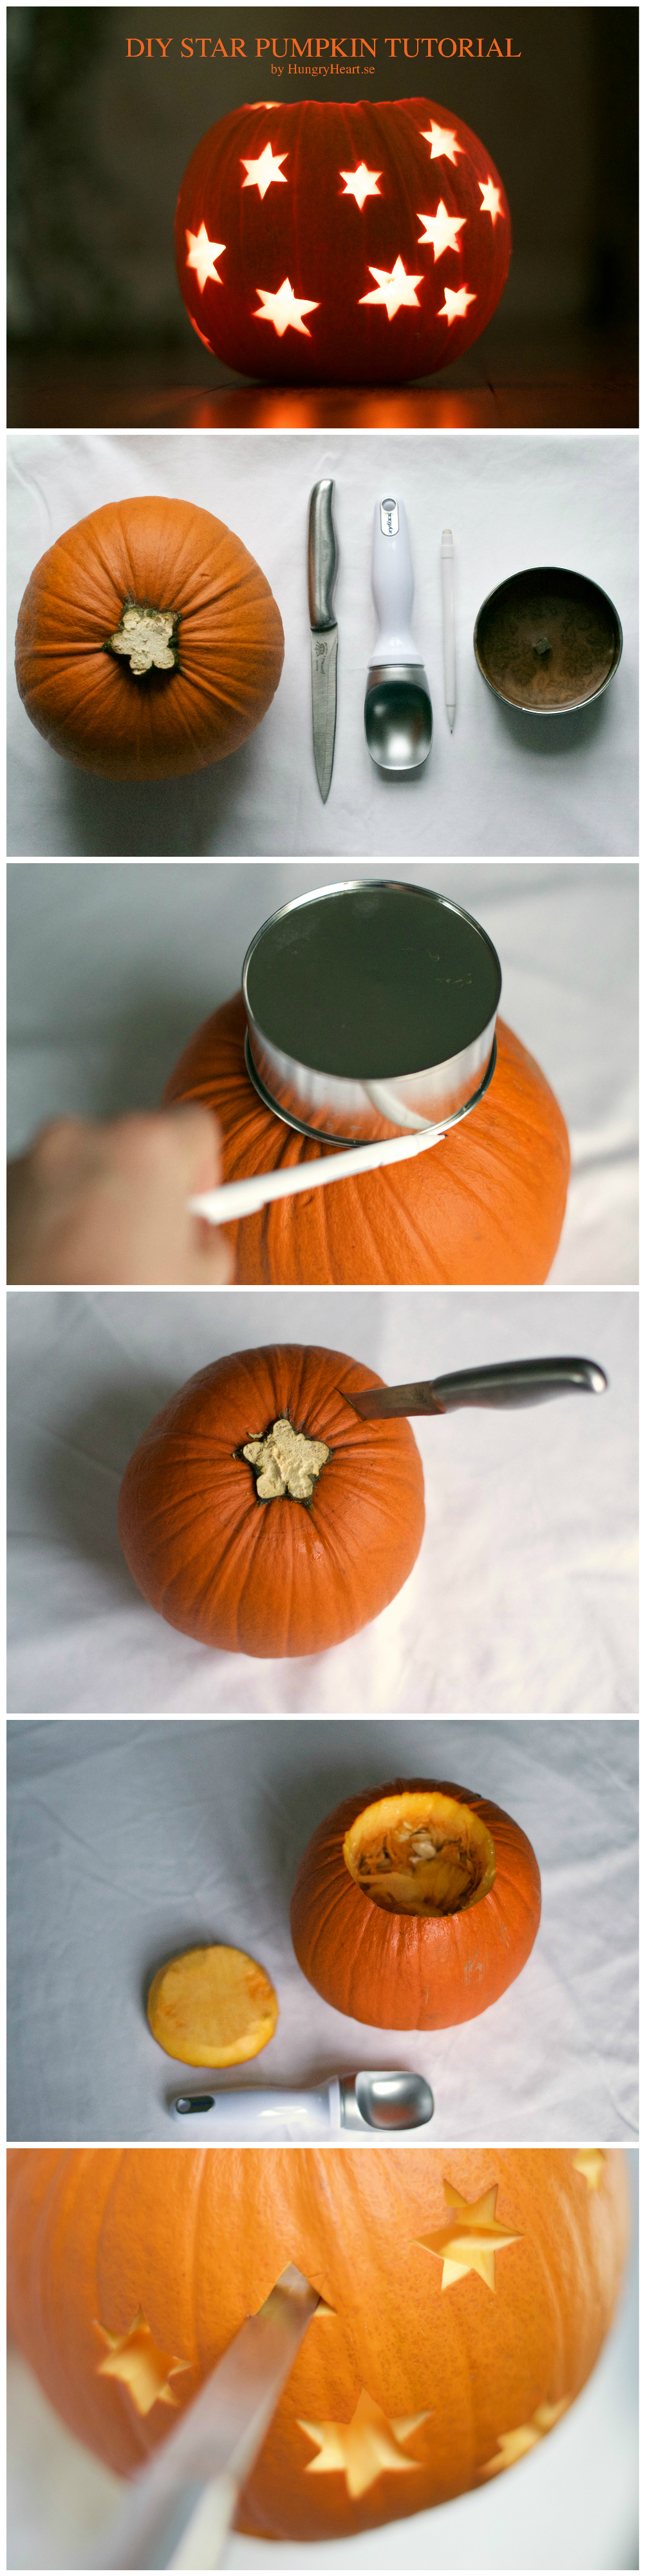 DIY Star Pumpkin Lantern Step-by-Step Tutorial | HungryHeart.se